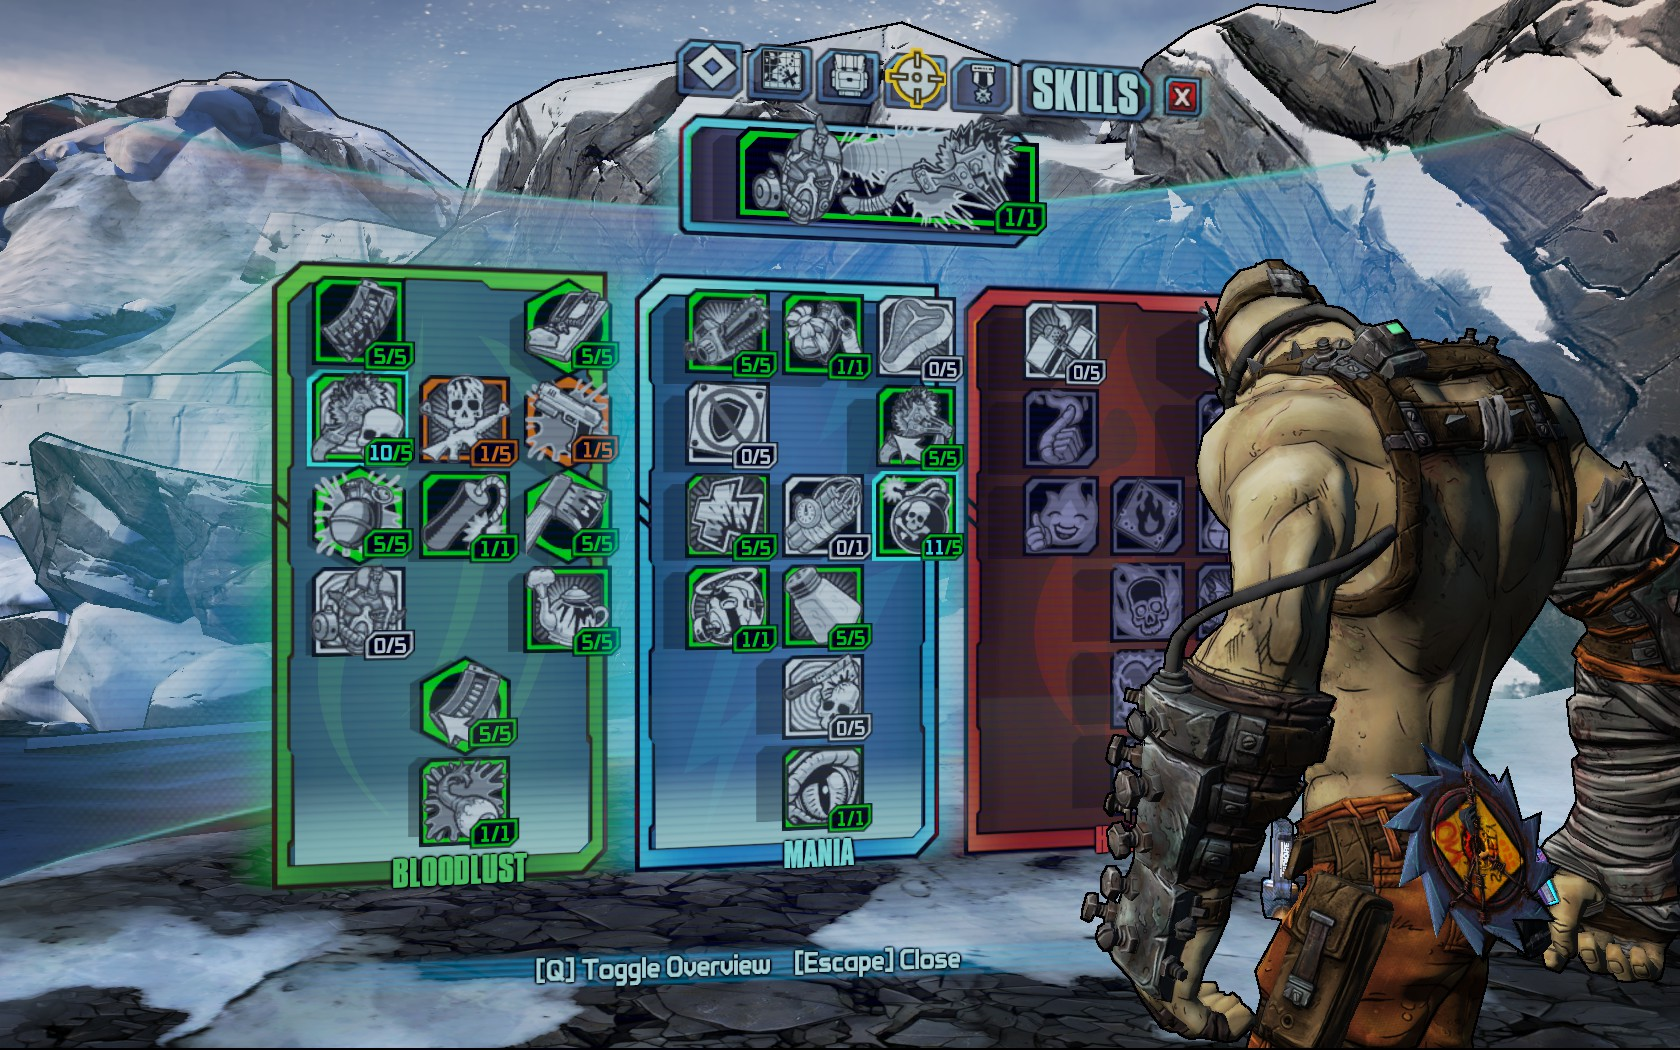 Steam Community :: Guide :: Borderlands 2 72 OP 8 Characters